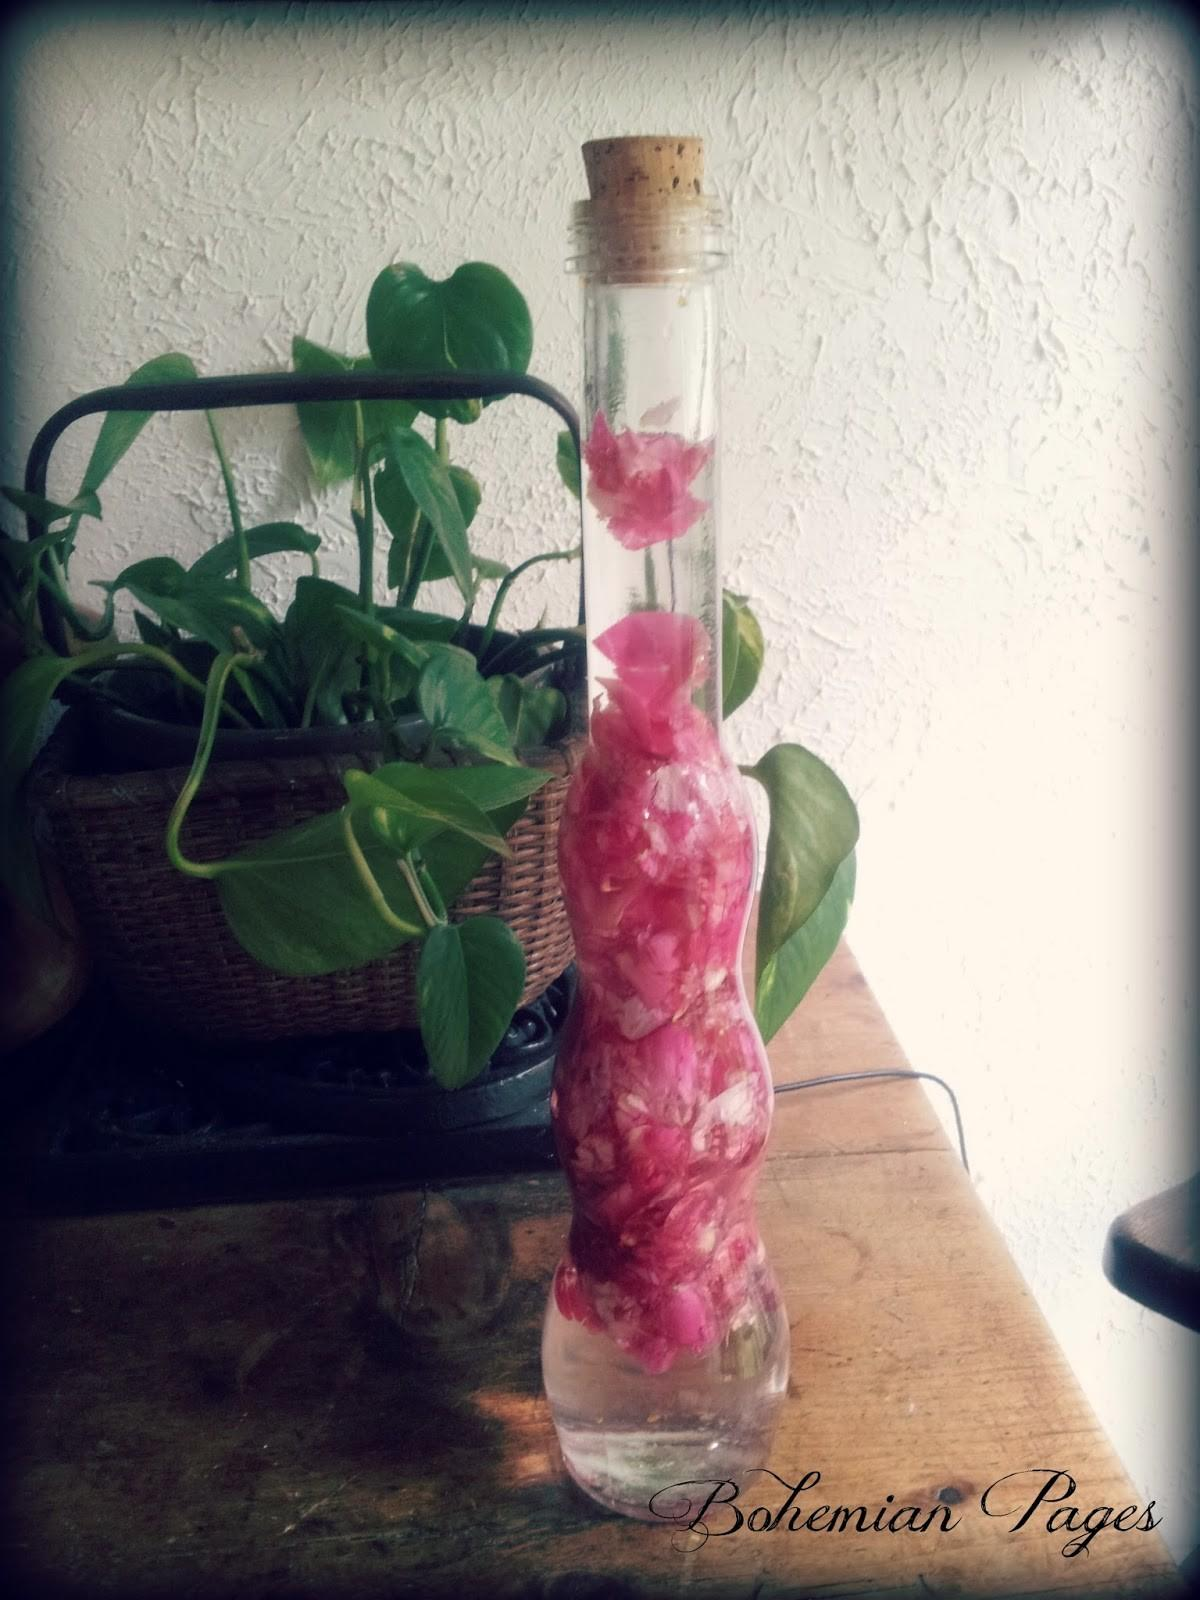 Bohemian Pages Make Your Own Rose Water